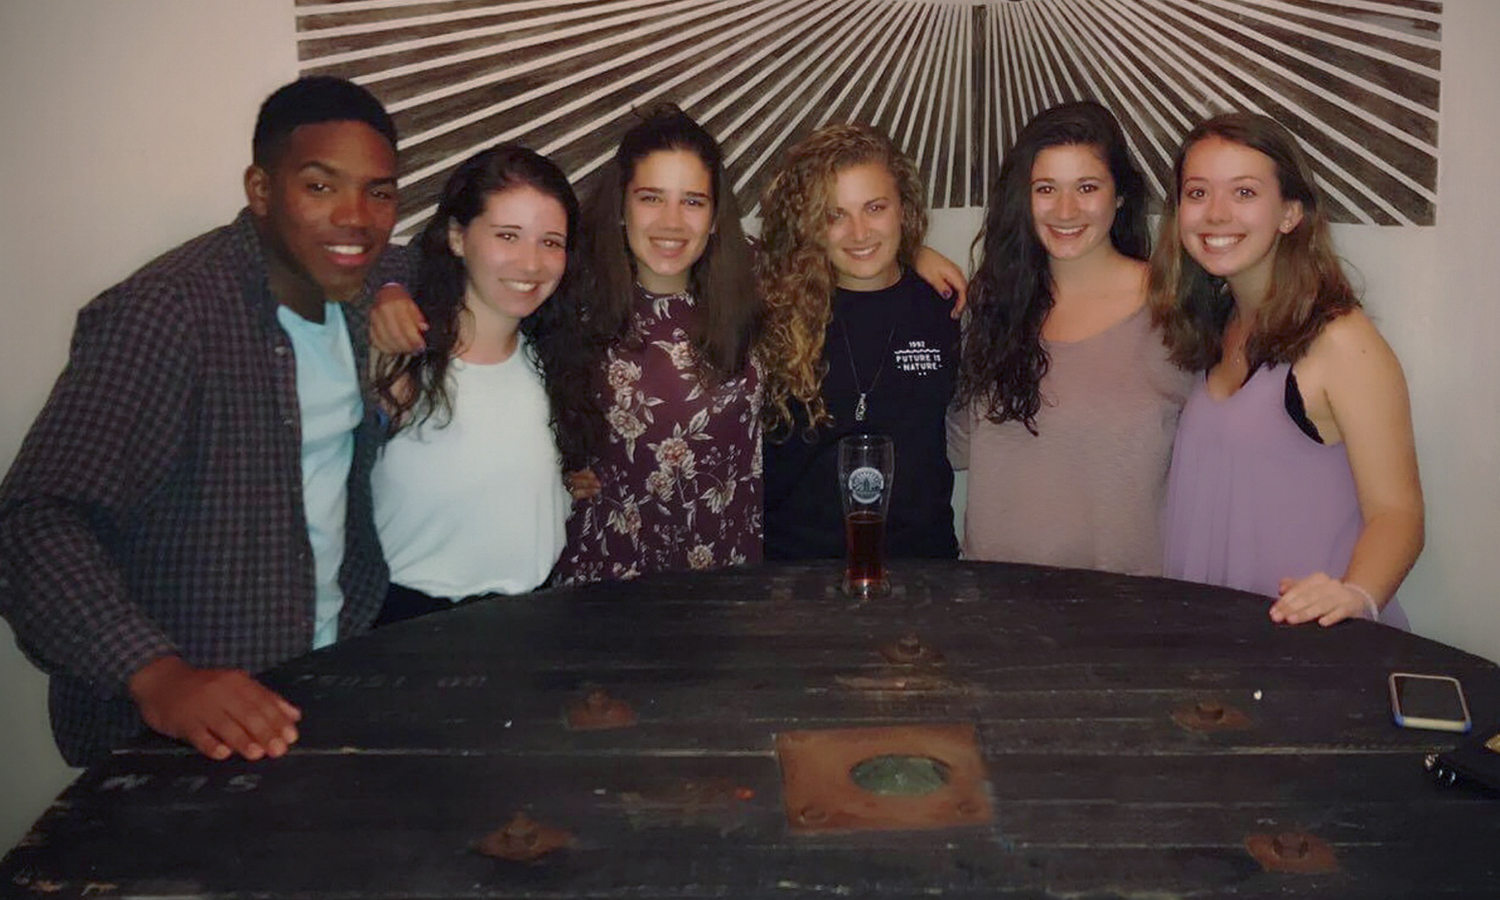 "This ""spring break"" is sunny for us students currently studying abroad at Rhodes University in Grahamstown, South Africa.From left to right:Matthew Benton '18, Sammy Ruthazer '18, Jules Picuri '19, Hannah Wood '18, Gemma Caglioti '19, Miranda Smith '18    RUTHAZER, SAMANTHA <SAMANTHA.RUTHAZER@hws.edu>"